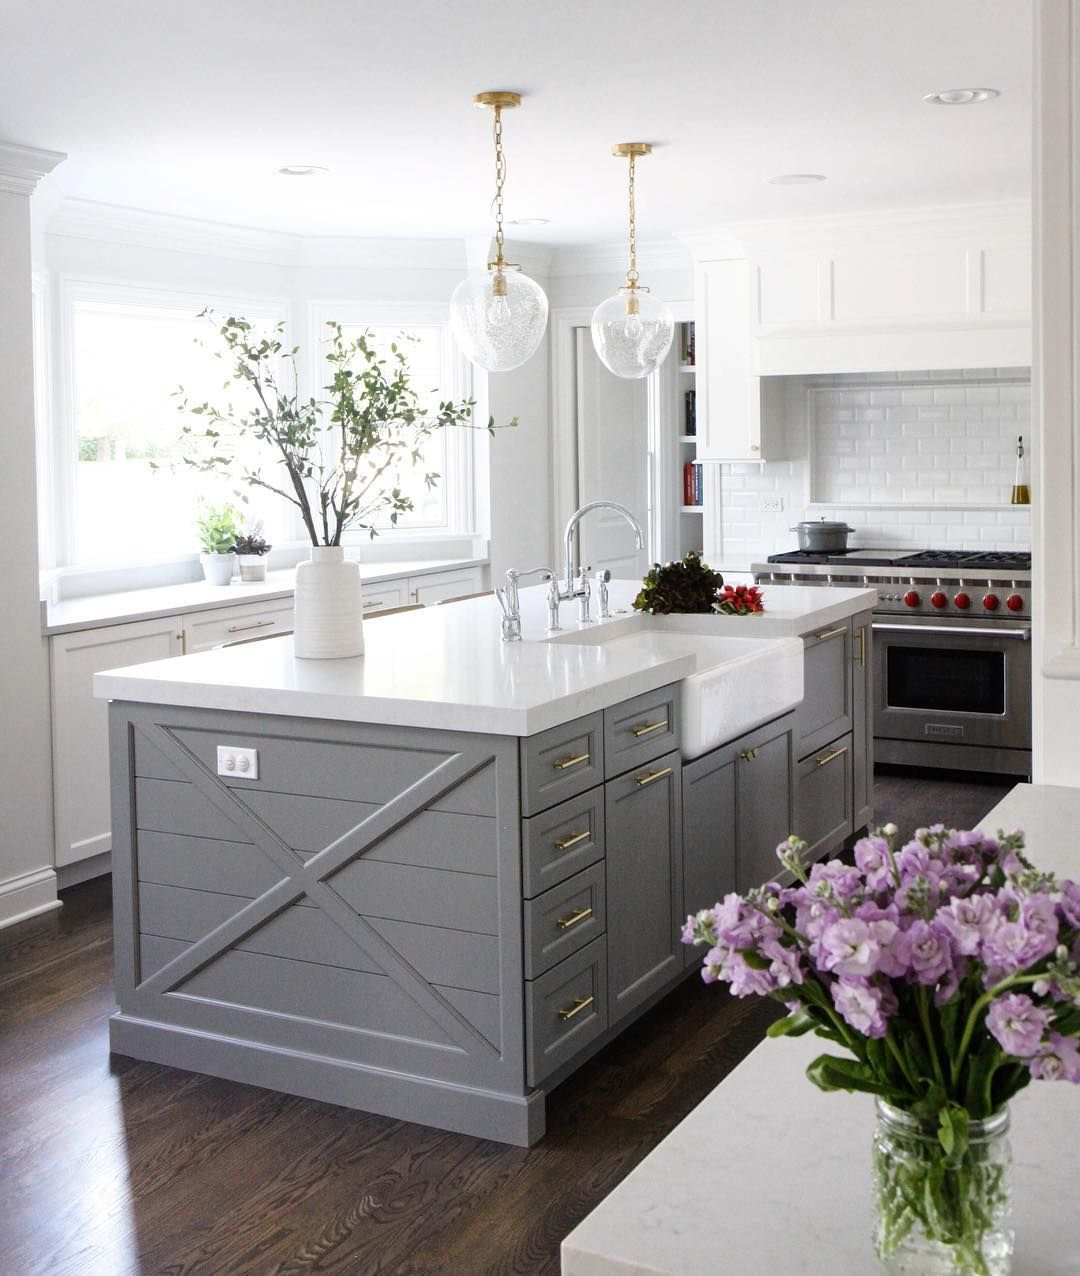 Kitchen Island Paint Color Is Chelsea Gray Benjamin Moore Via Park - Grey and white cupboards